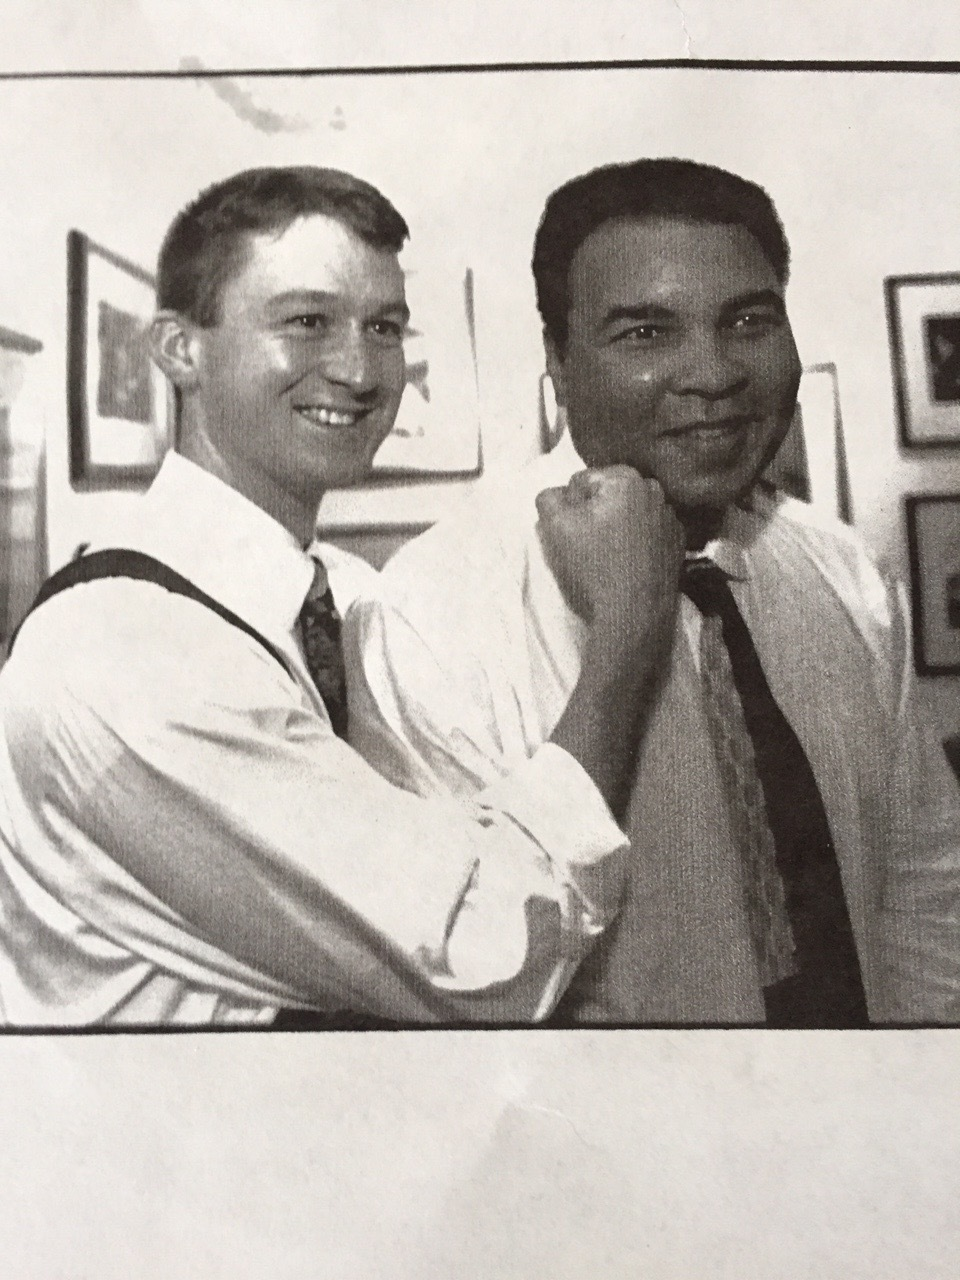 """Christian Talbot & Muhammad Ali, taken at Govinda Gallery in Washington, DC on September 20, 1995. What better picture for a blog post titled """"The 1-2 punch""""about DC-area private schools"""